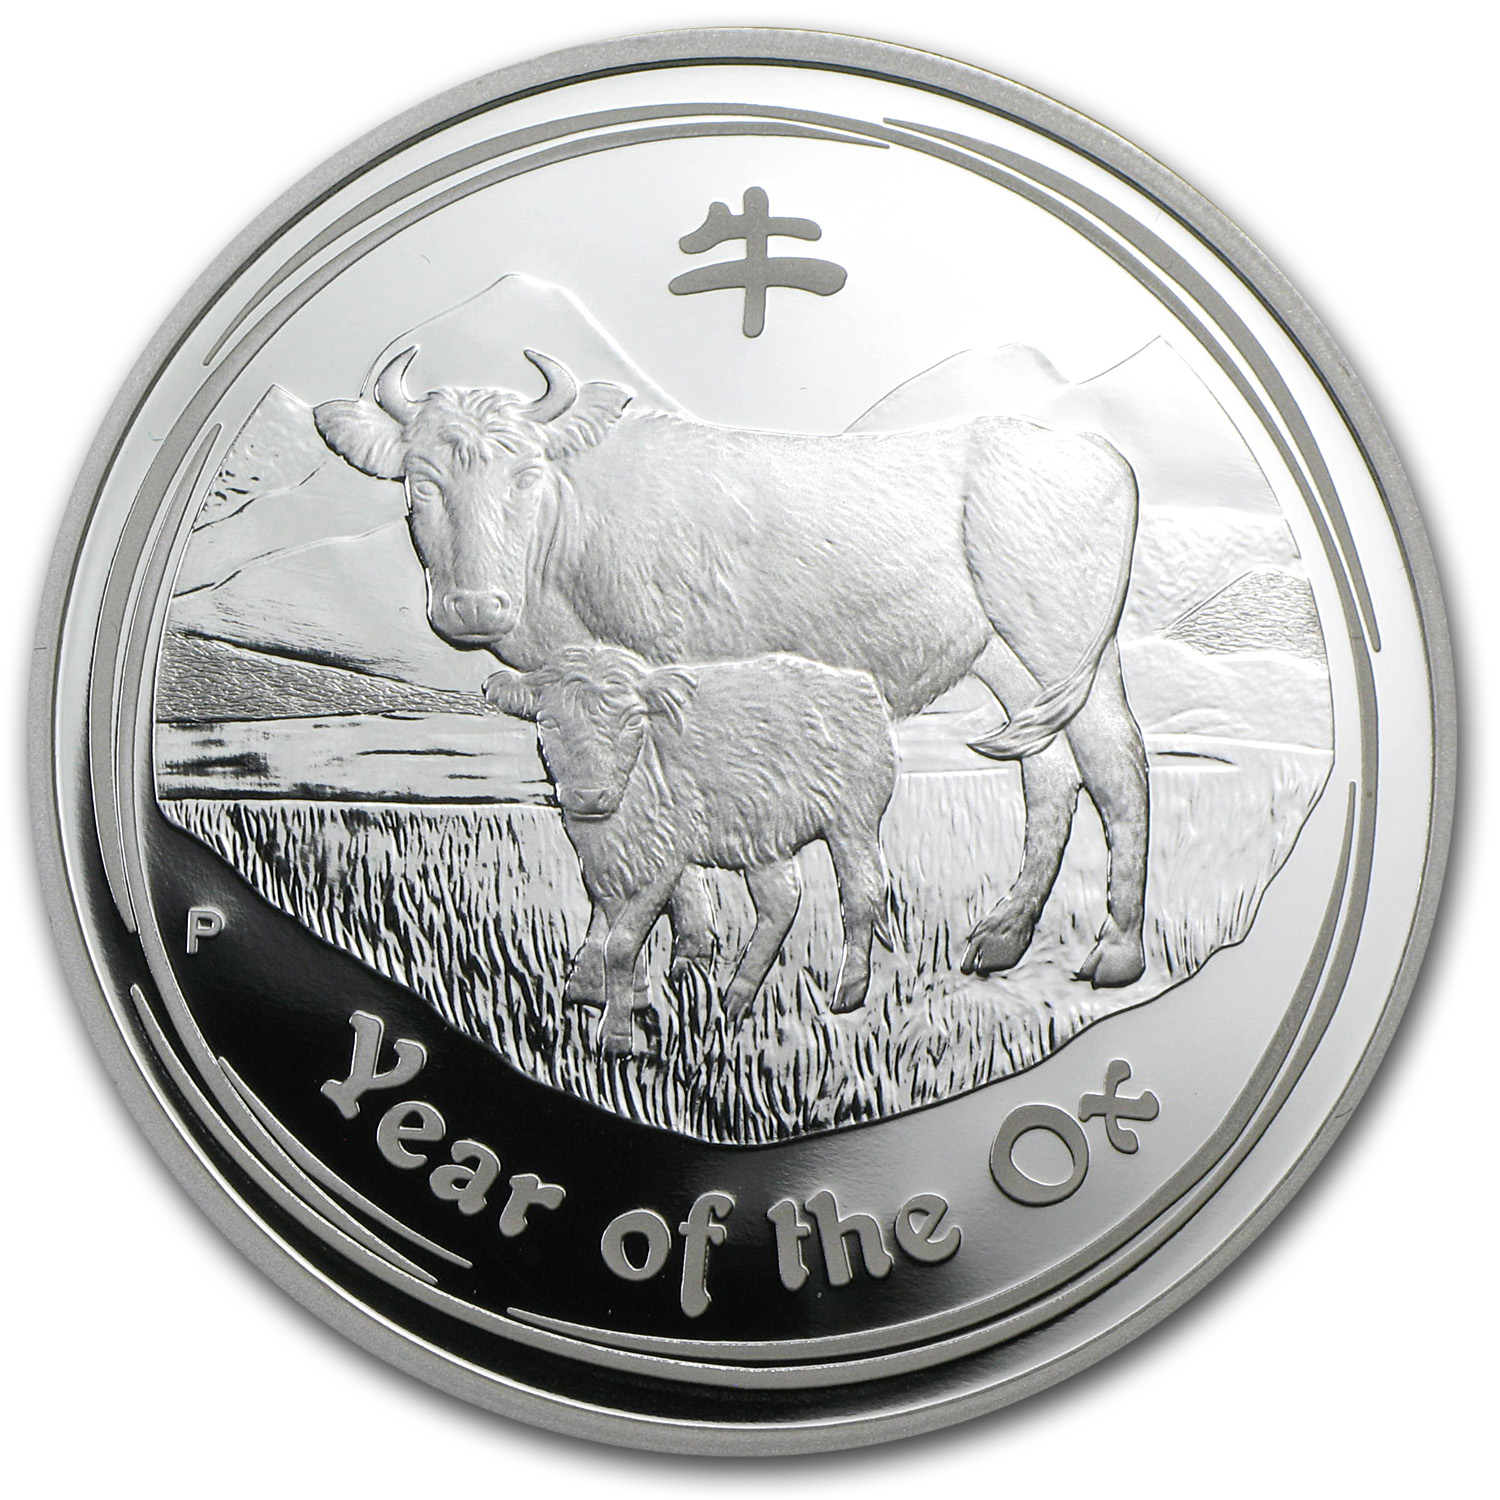 2009 1 oz Silver Australian Ox Proof (Series II, w/Box & COA)